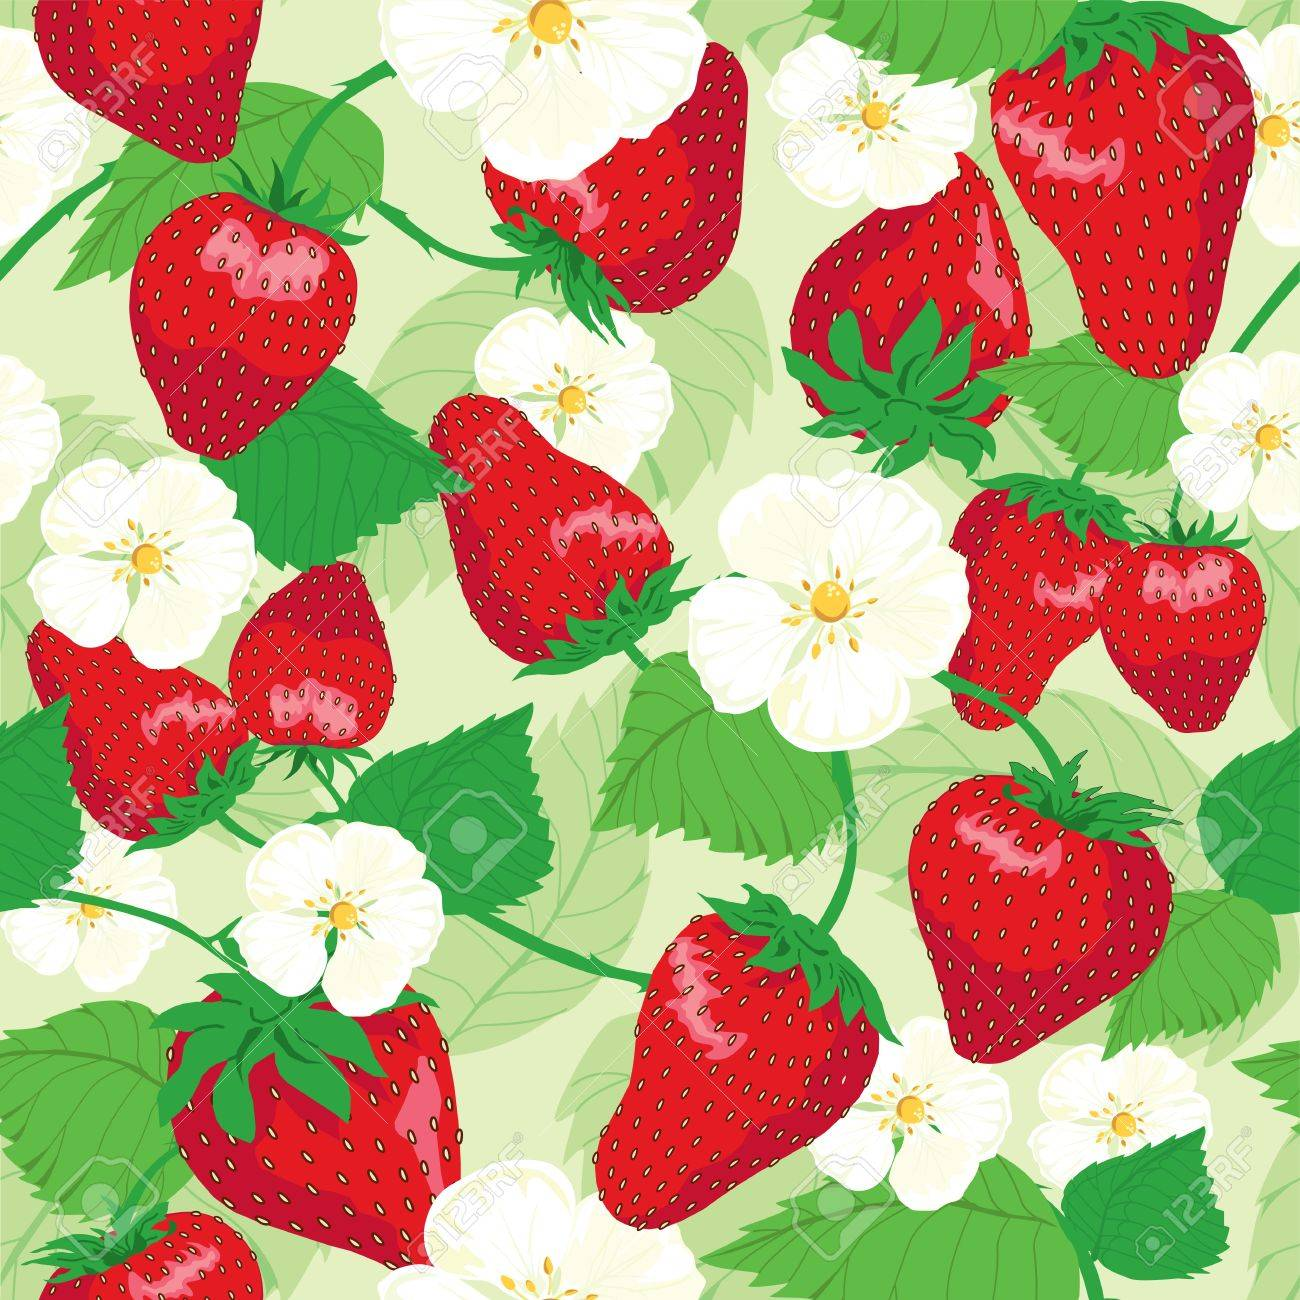 strawberries and flowers, wrapping, seamless pattern, leaf background - 14192044